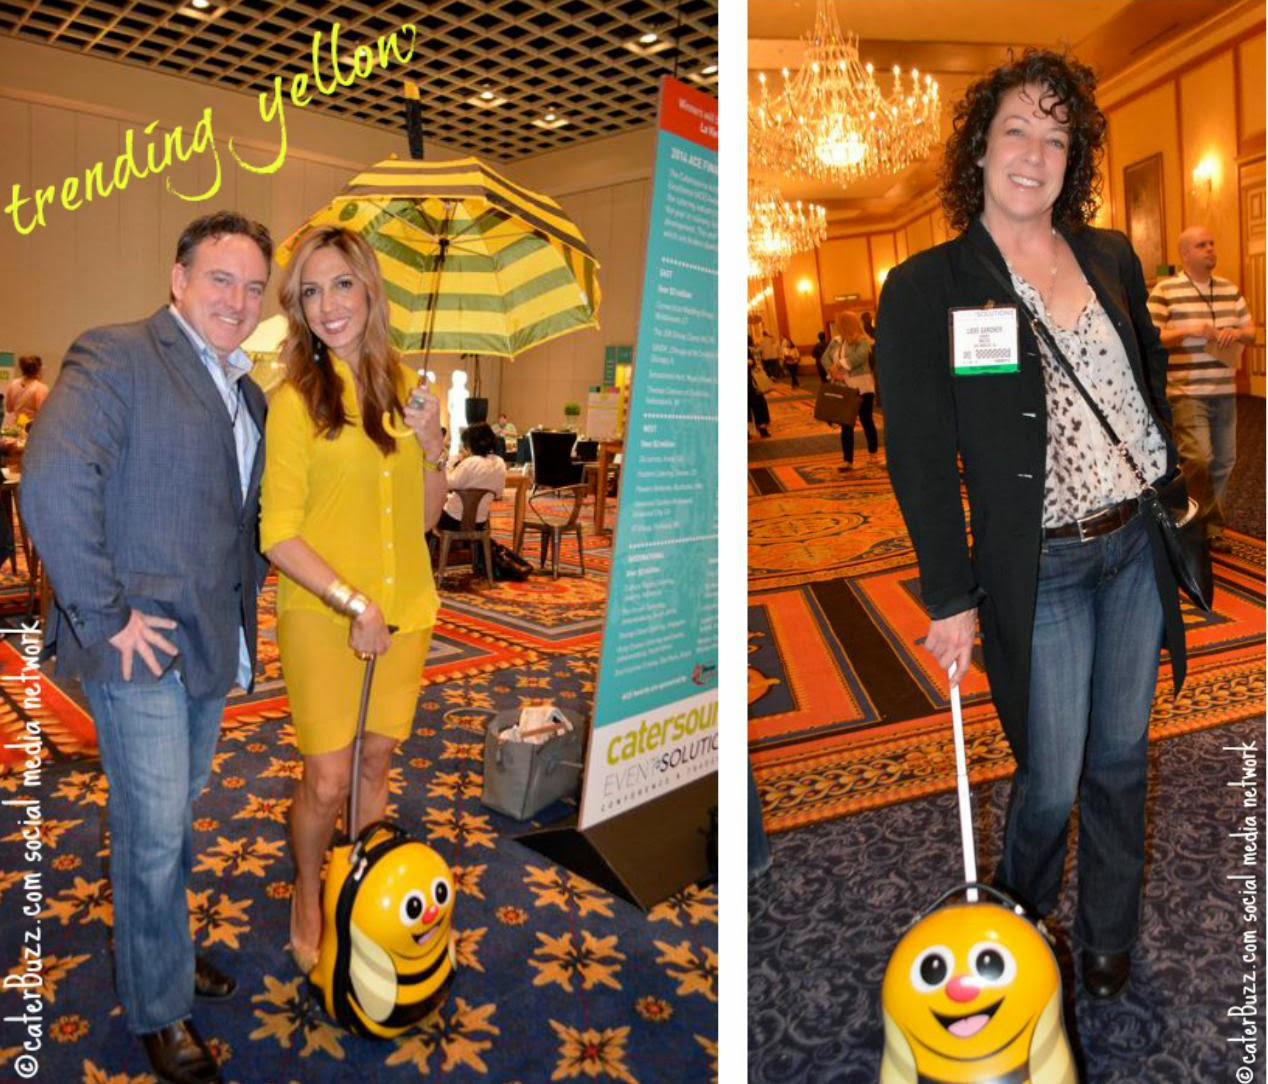 Jason capps with vicky crease; liese gardner ; photos © caterBuzz.com social media network -